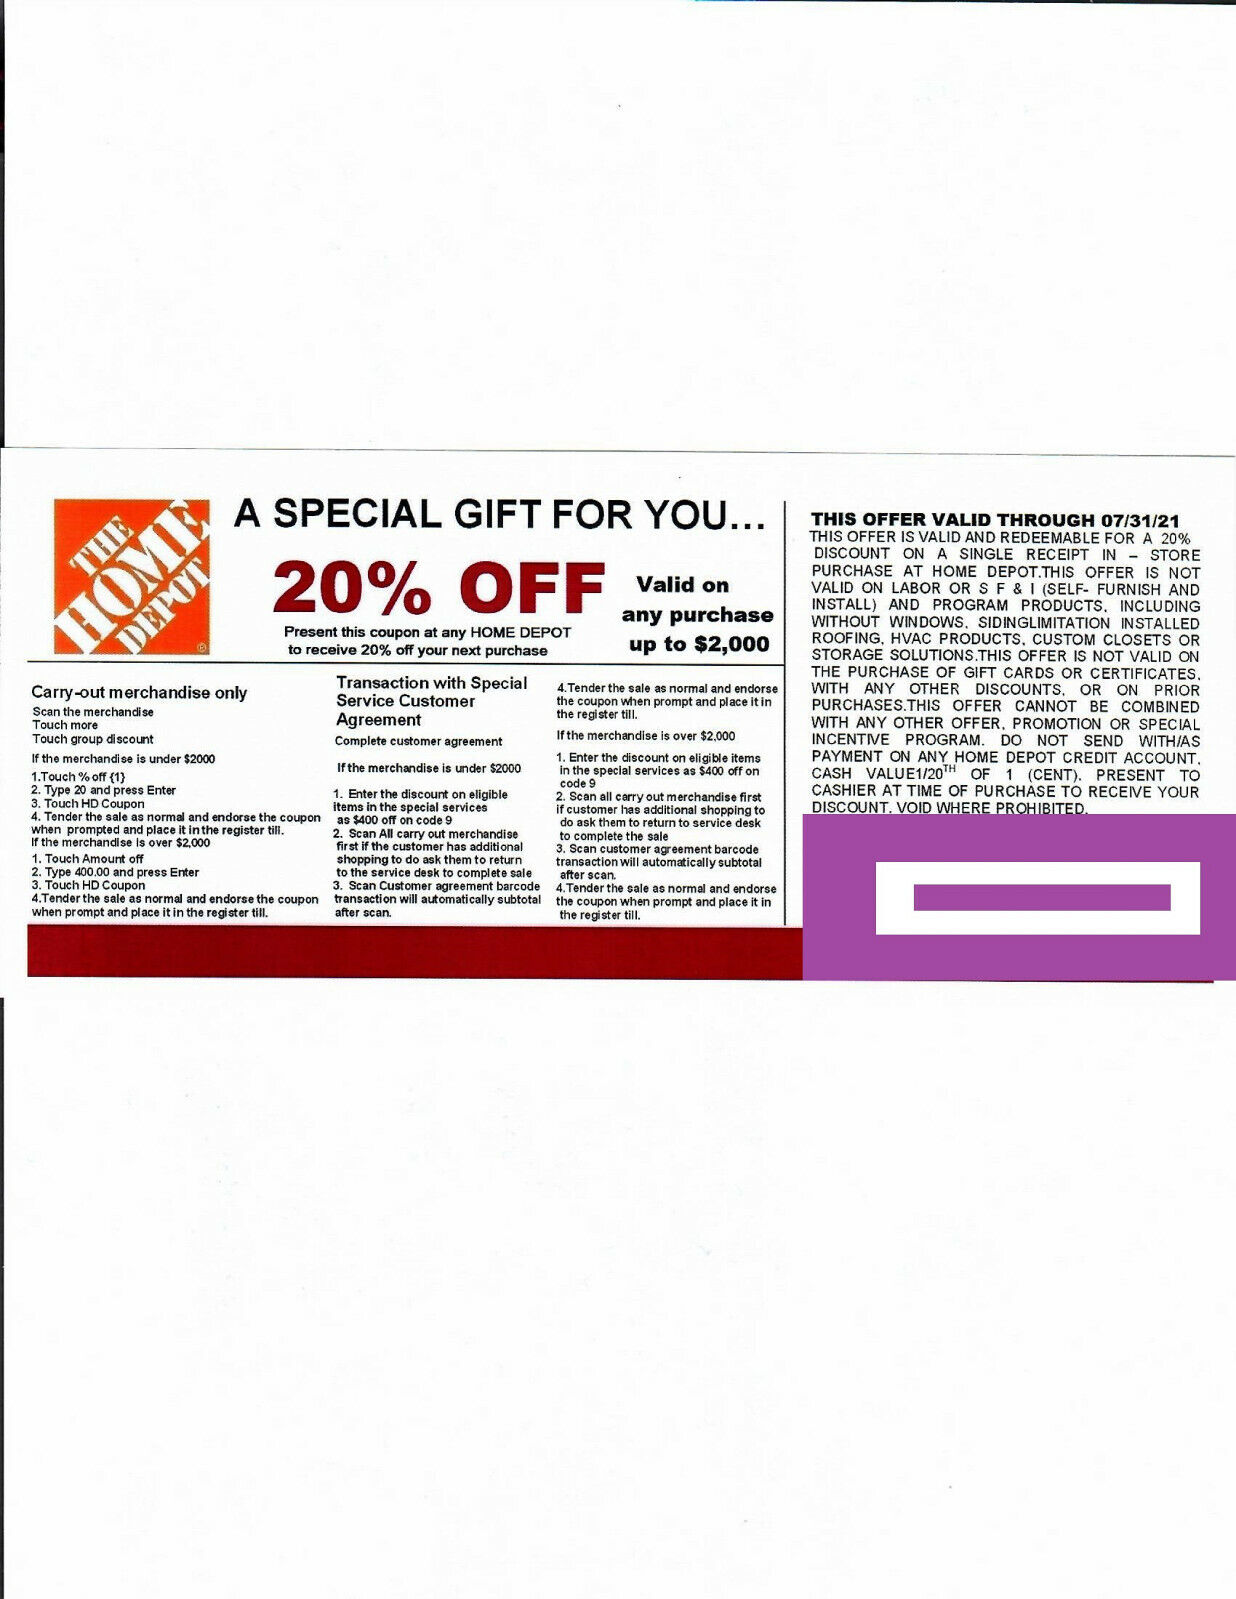 1 20 OFF HOME DEPOT Competitors Coupon At Lowe s Expires 7/31/21 - $20.50